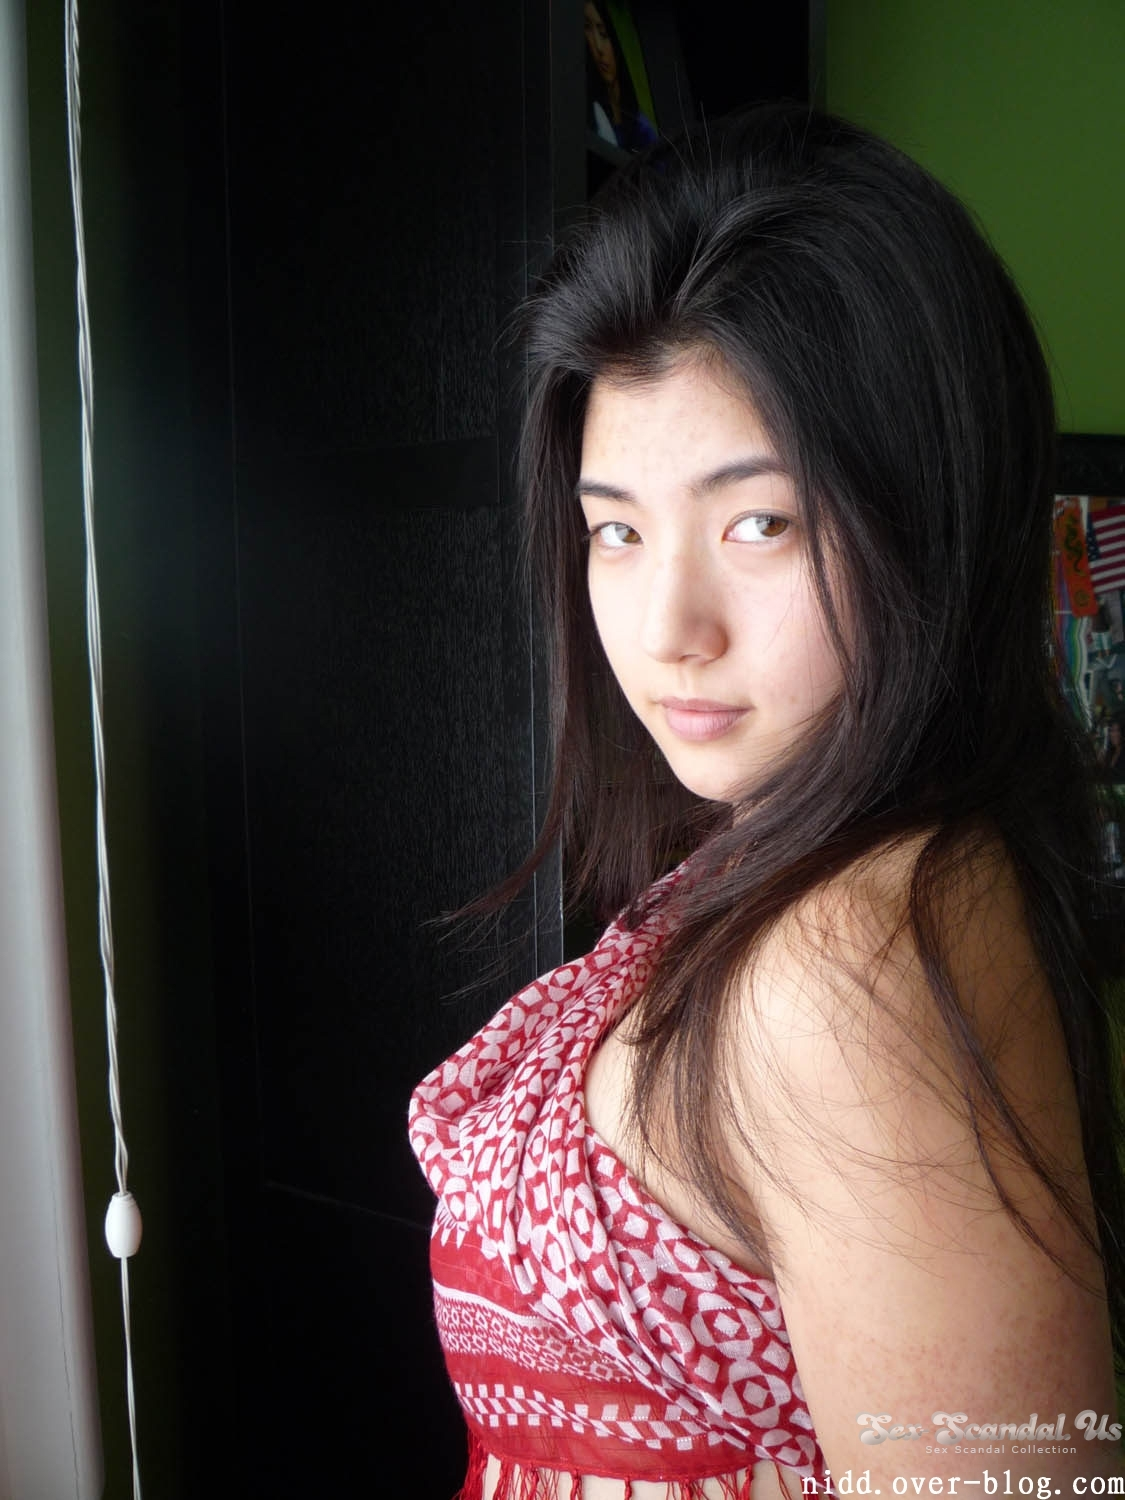 Naked girls asian amateur american